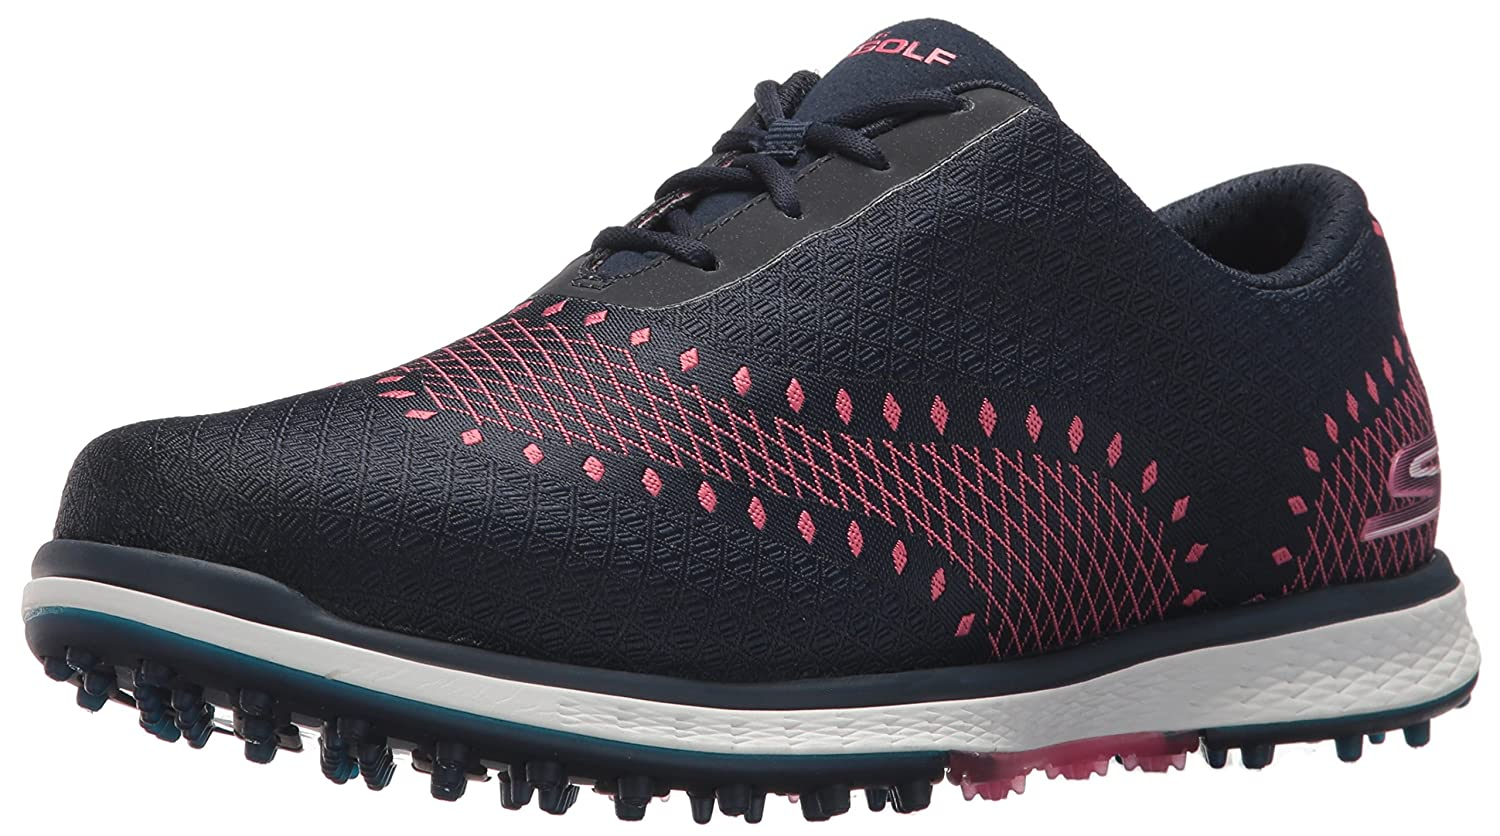 Skechers Women's Go Golf Elite Ace Jacquard Golf Shoe B06XWGFC9T 6 B(M) US|Navy/Pink